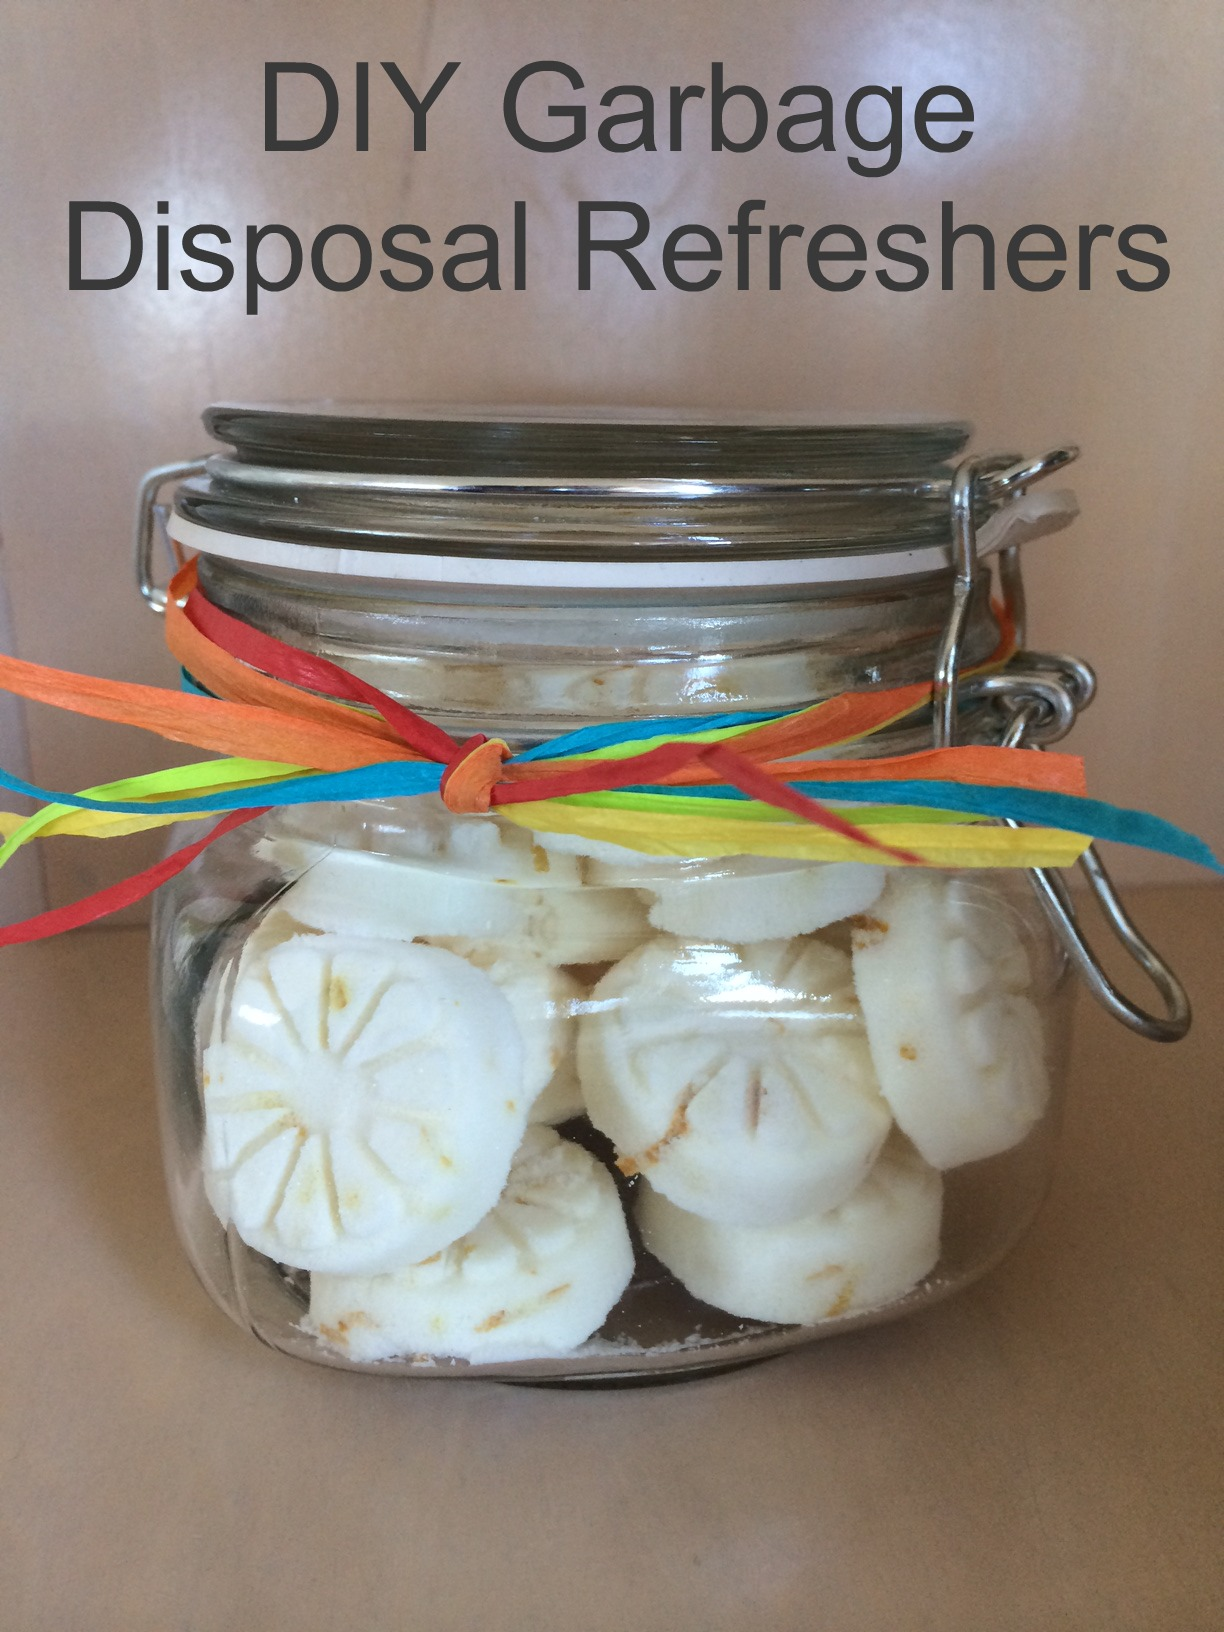 Great housewarming or hosting gift diy how to make for What makes a good housewarming gift